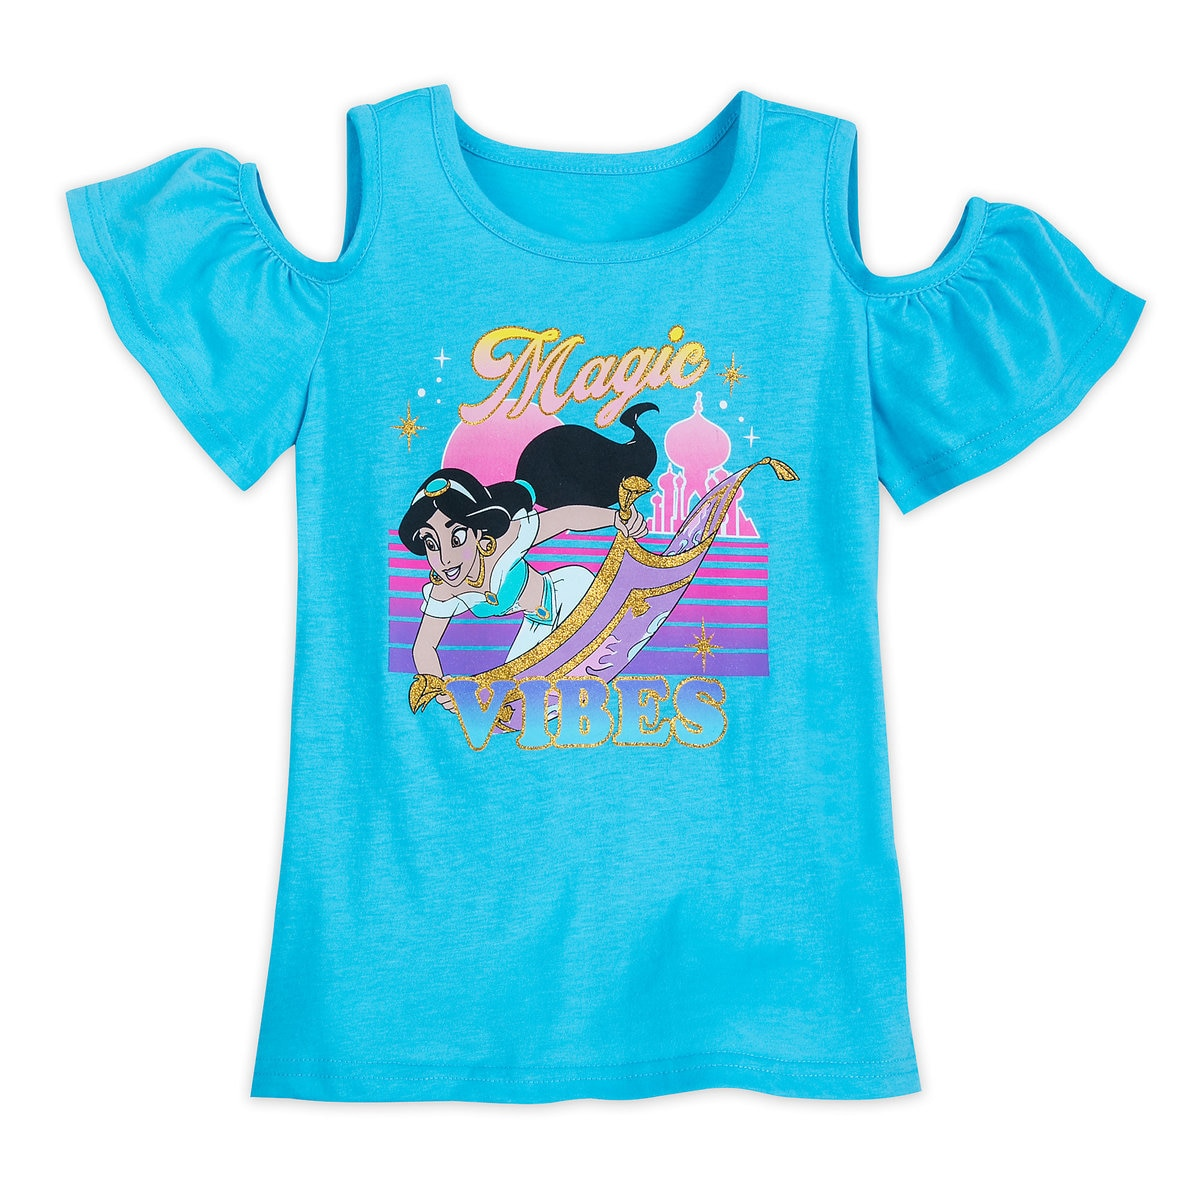 fe1e0ba17 Product Image of Jasmine Cold Shoulder T-Shirt for Girls - Aladdin # 1